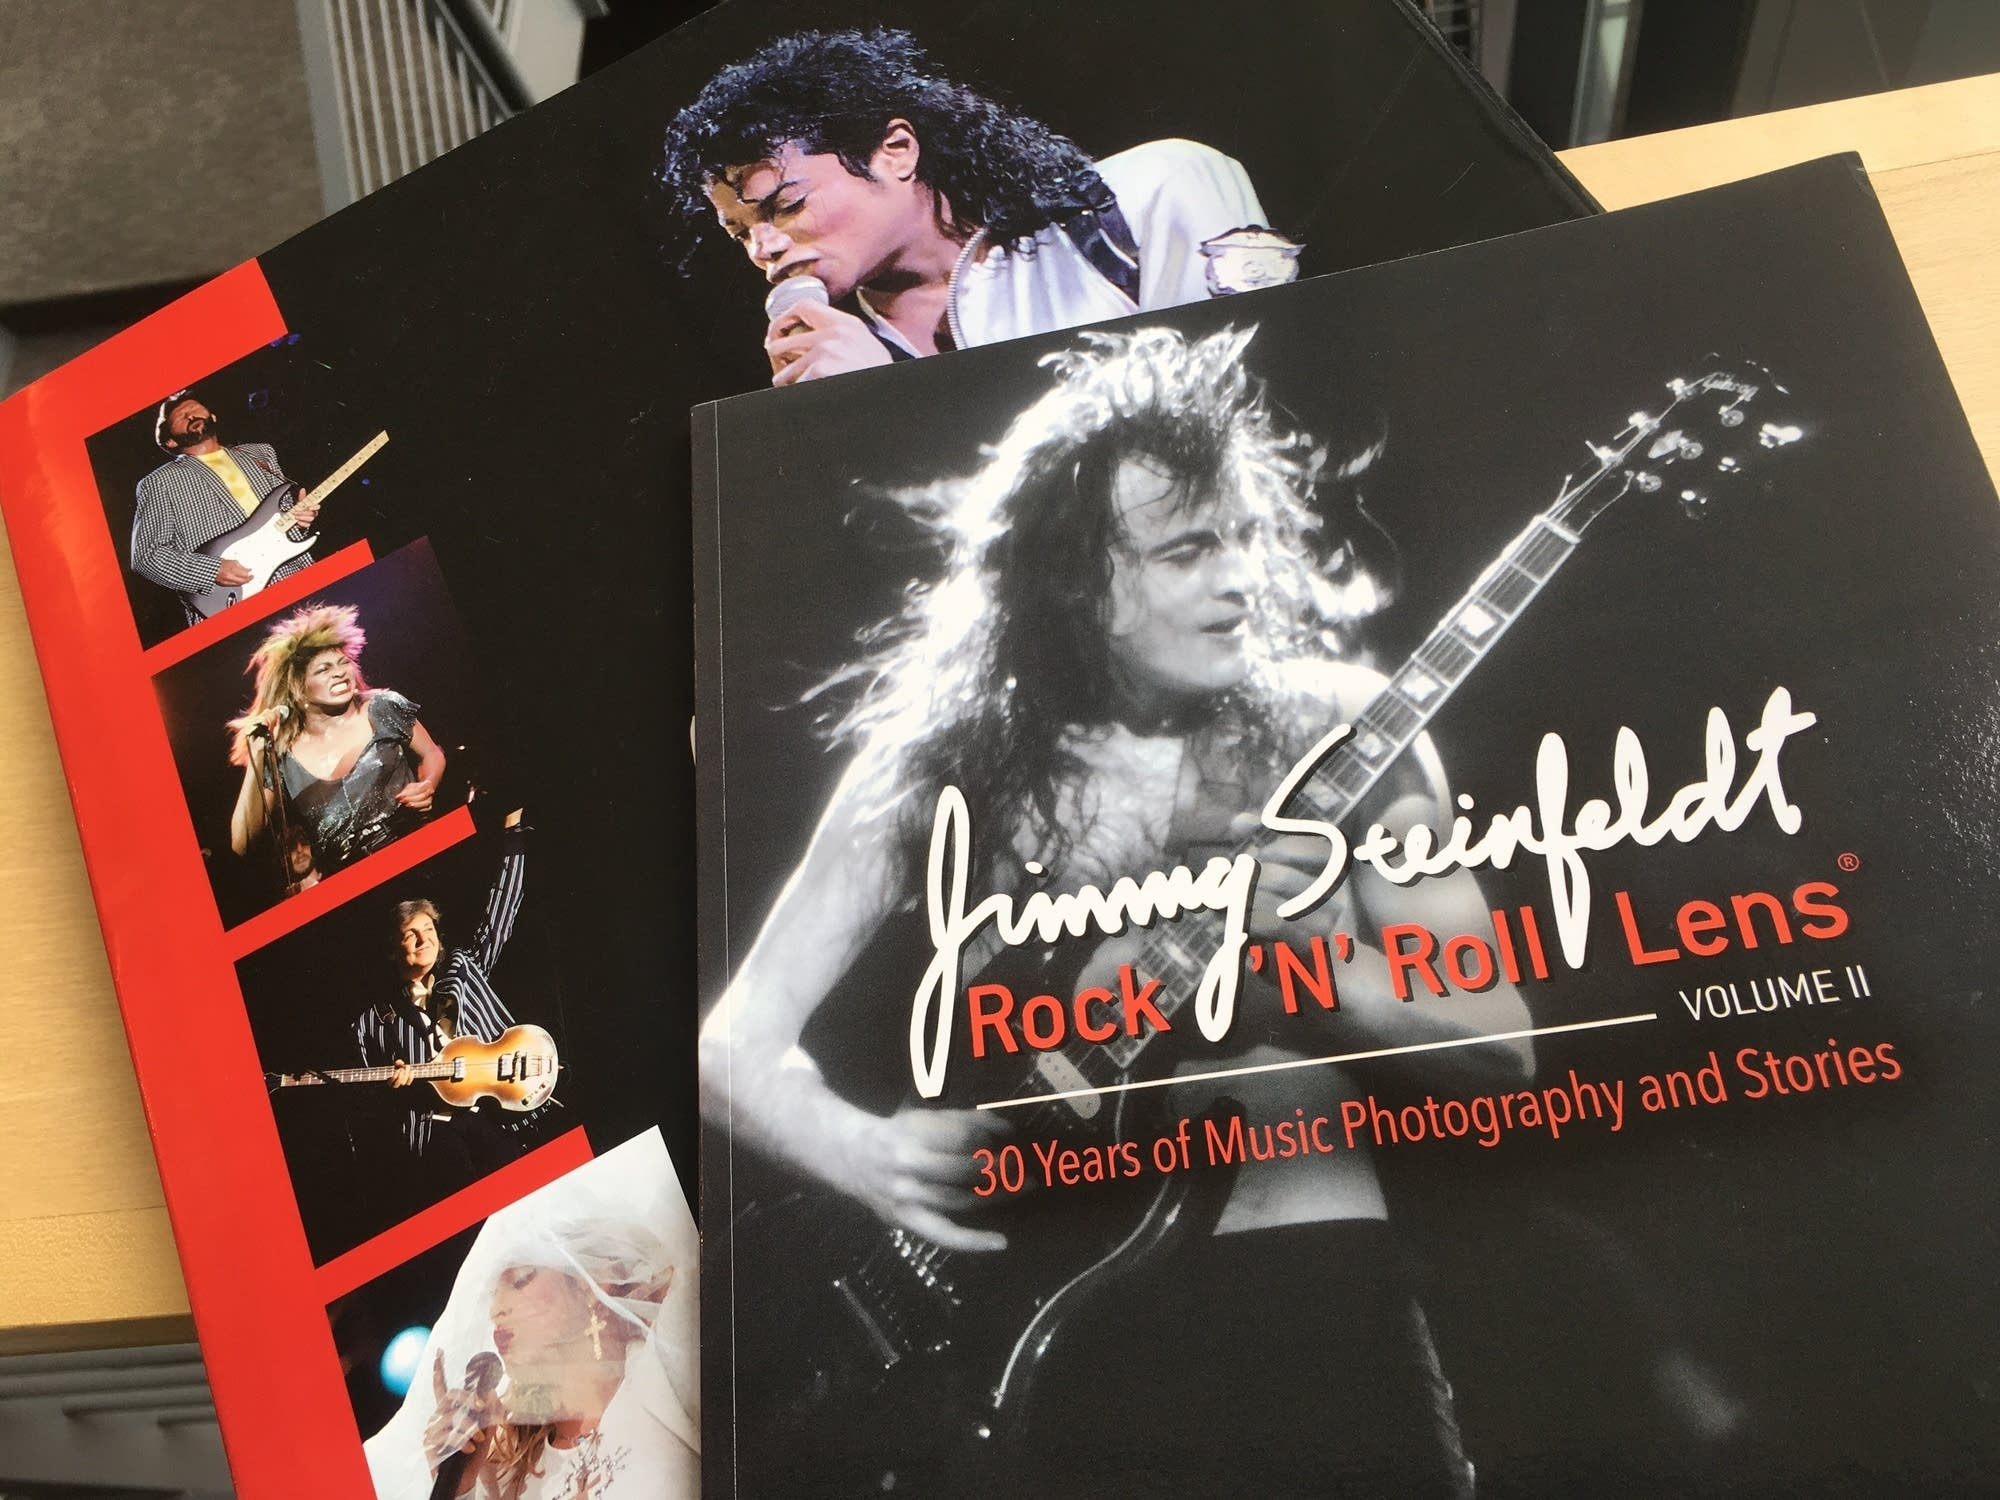 Jimmy Steinfeldt's two volumes of 'Rock 'N' Roll Lens'